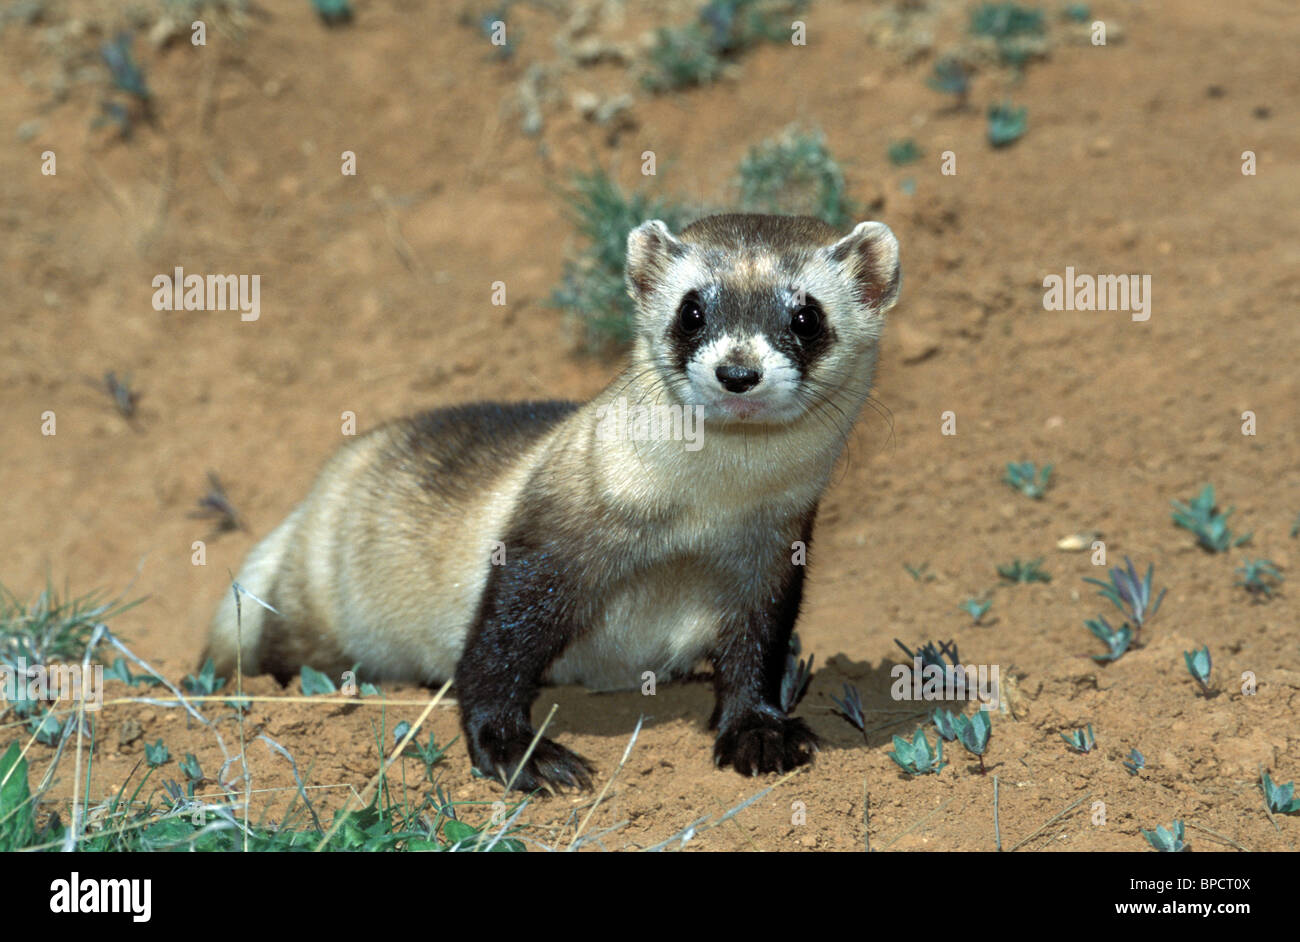 Black-footed Ferret  ENDANGERED SPECIES - Stock Image